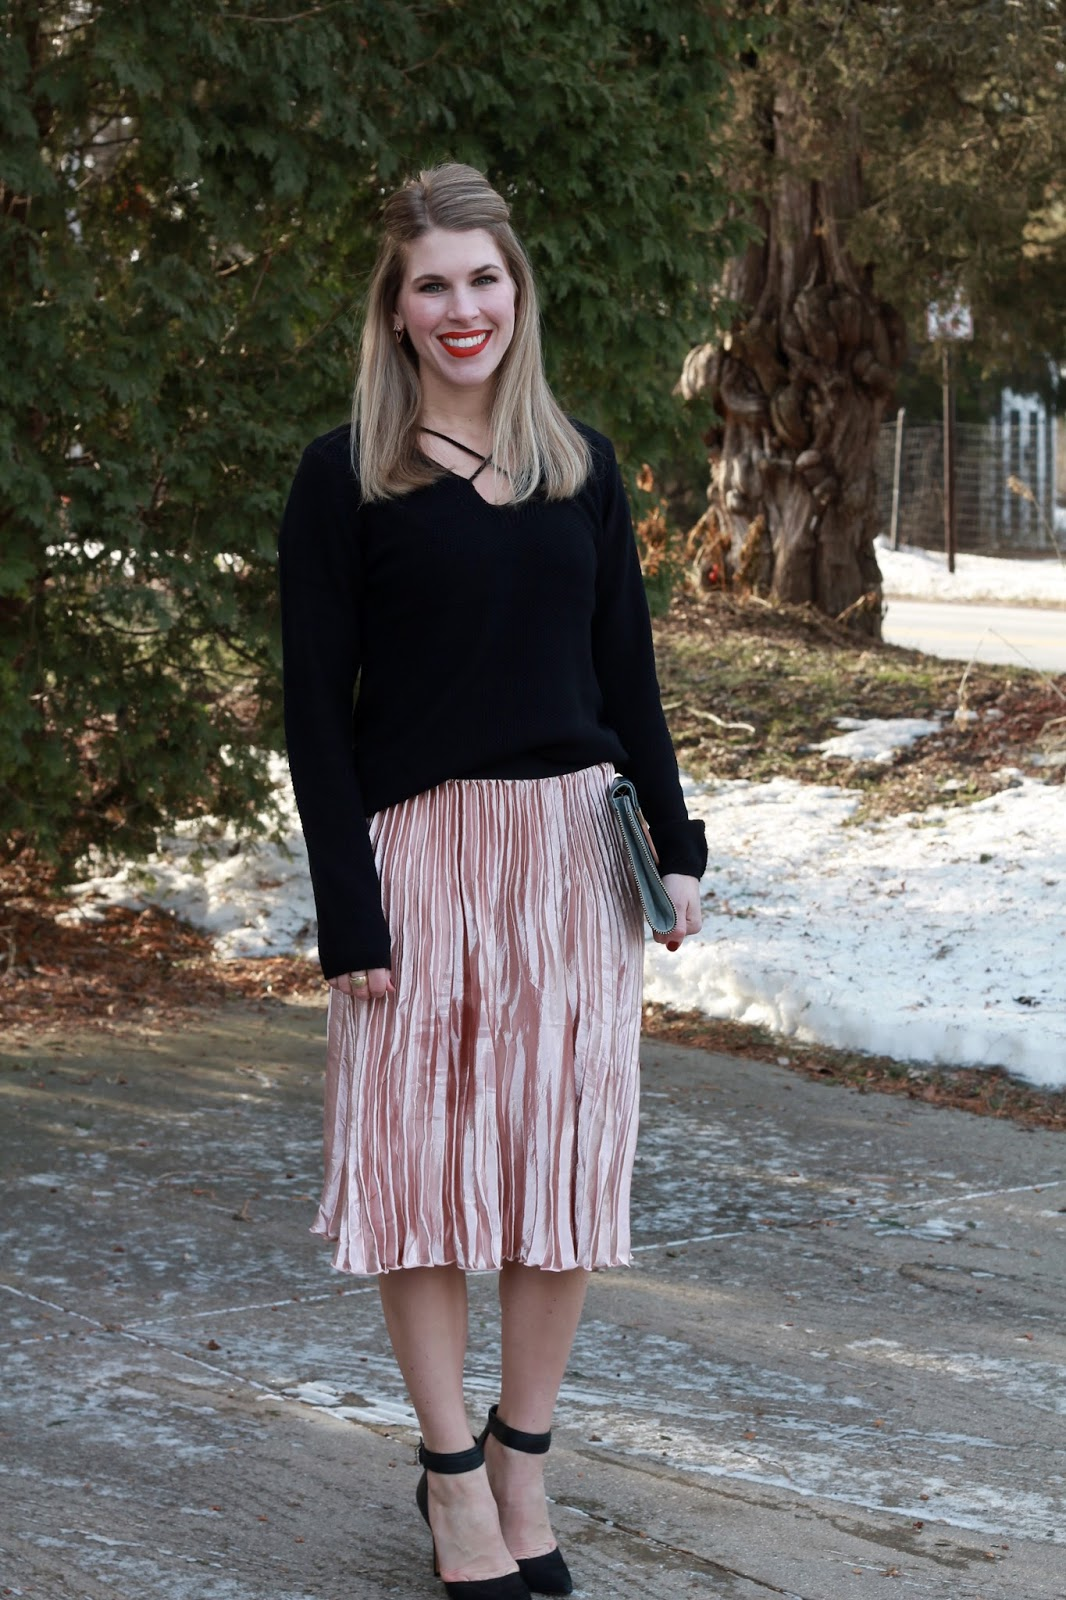 i do declaire: pleated pink midi skirt & confident twosday linkup